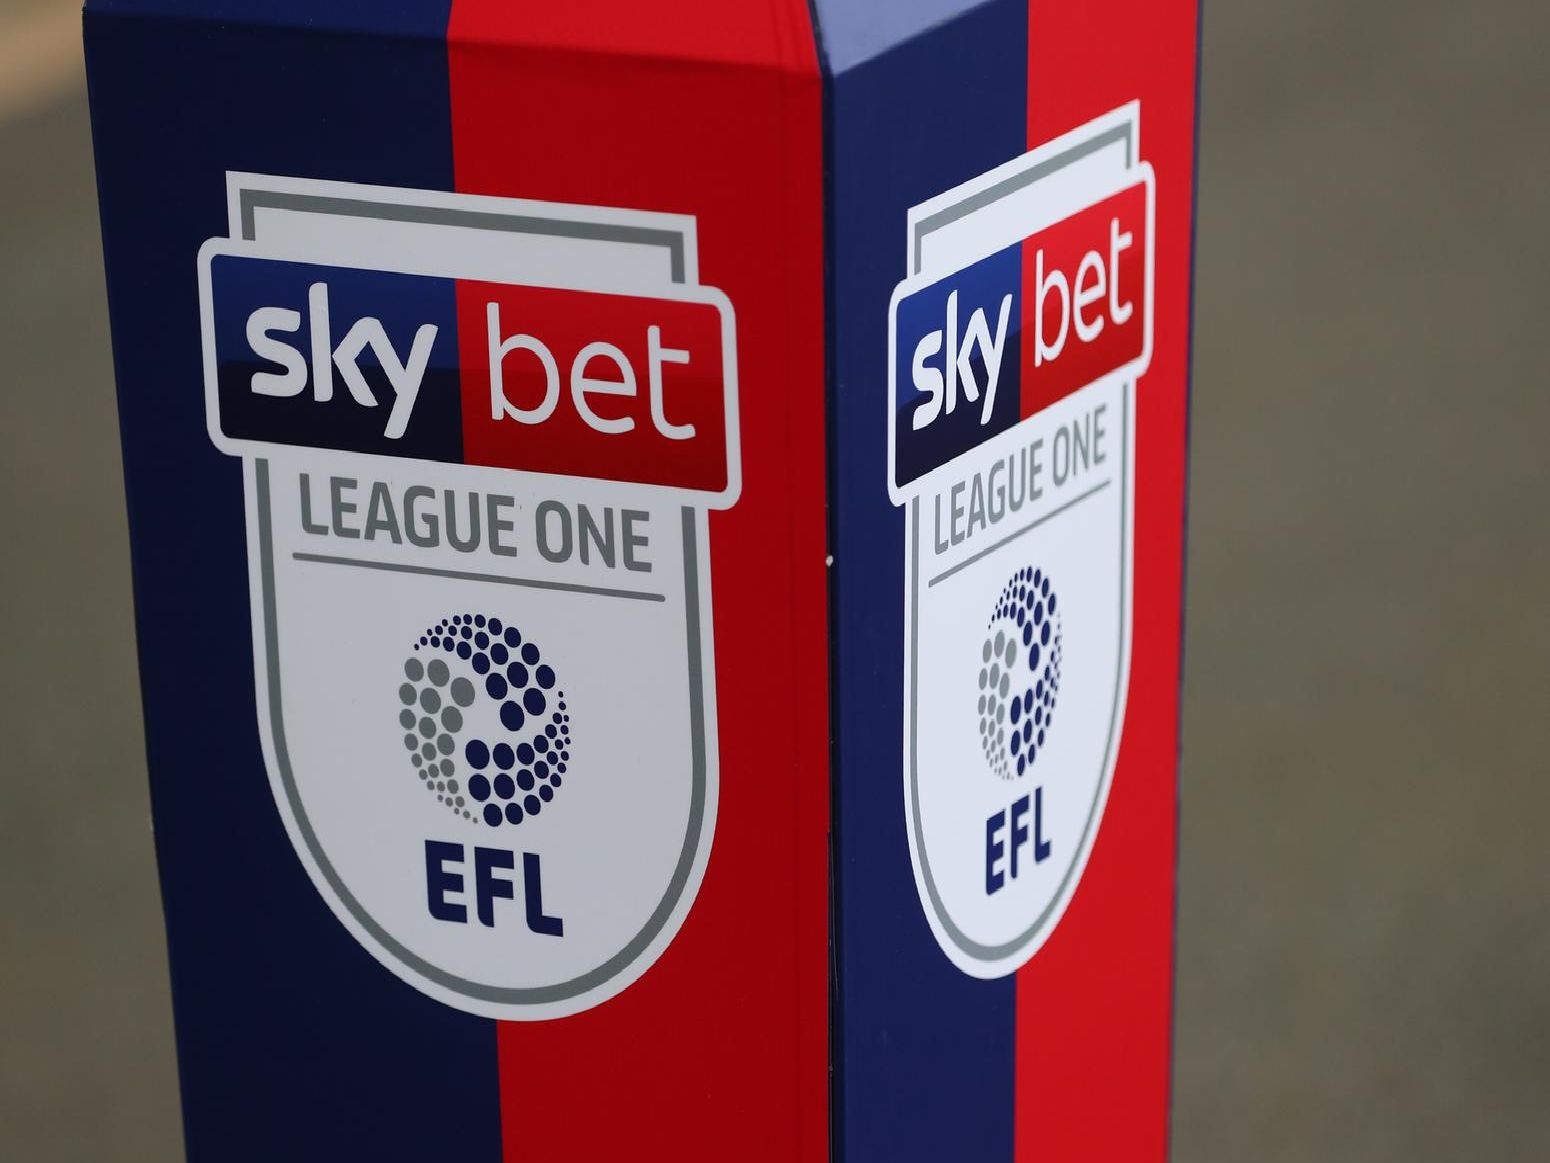 We're preparing for another weekend of League One fixtures - but how will each club fare?